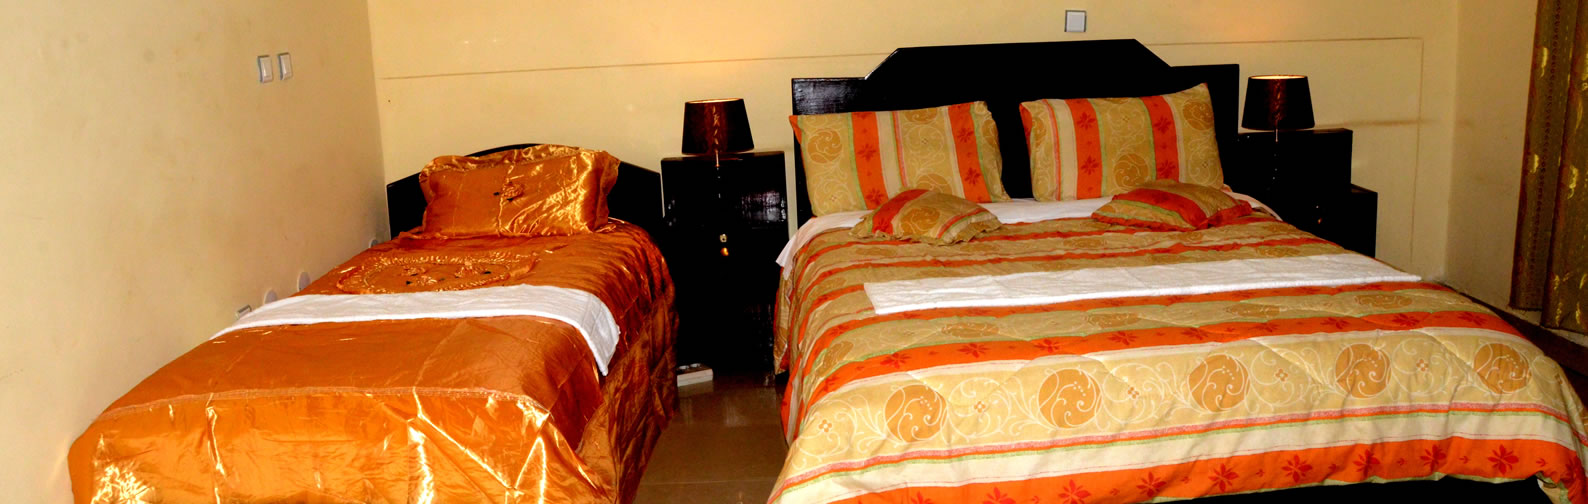 NGG Hotel Large Twins Bed Room